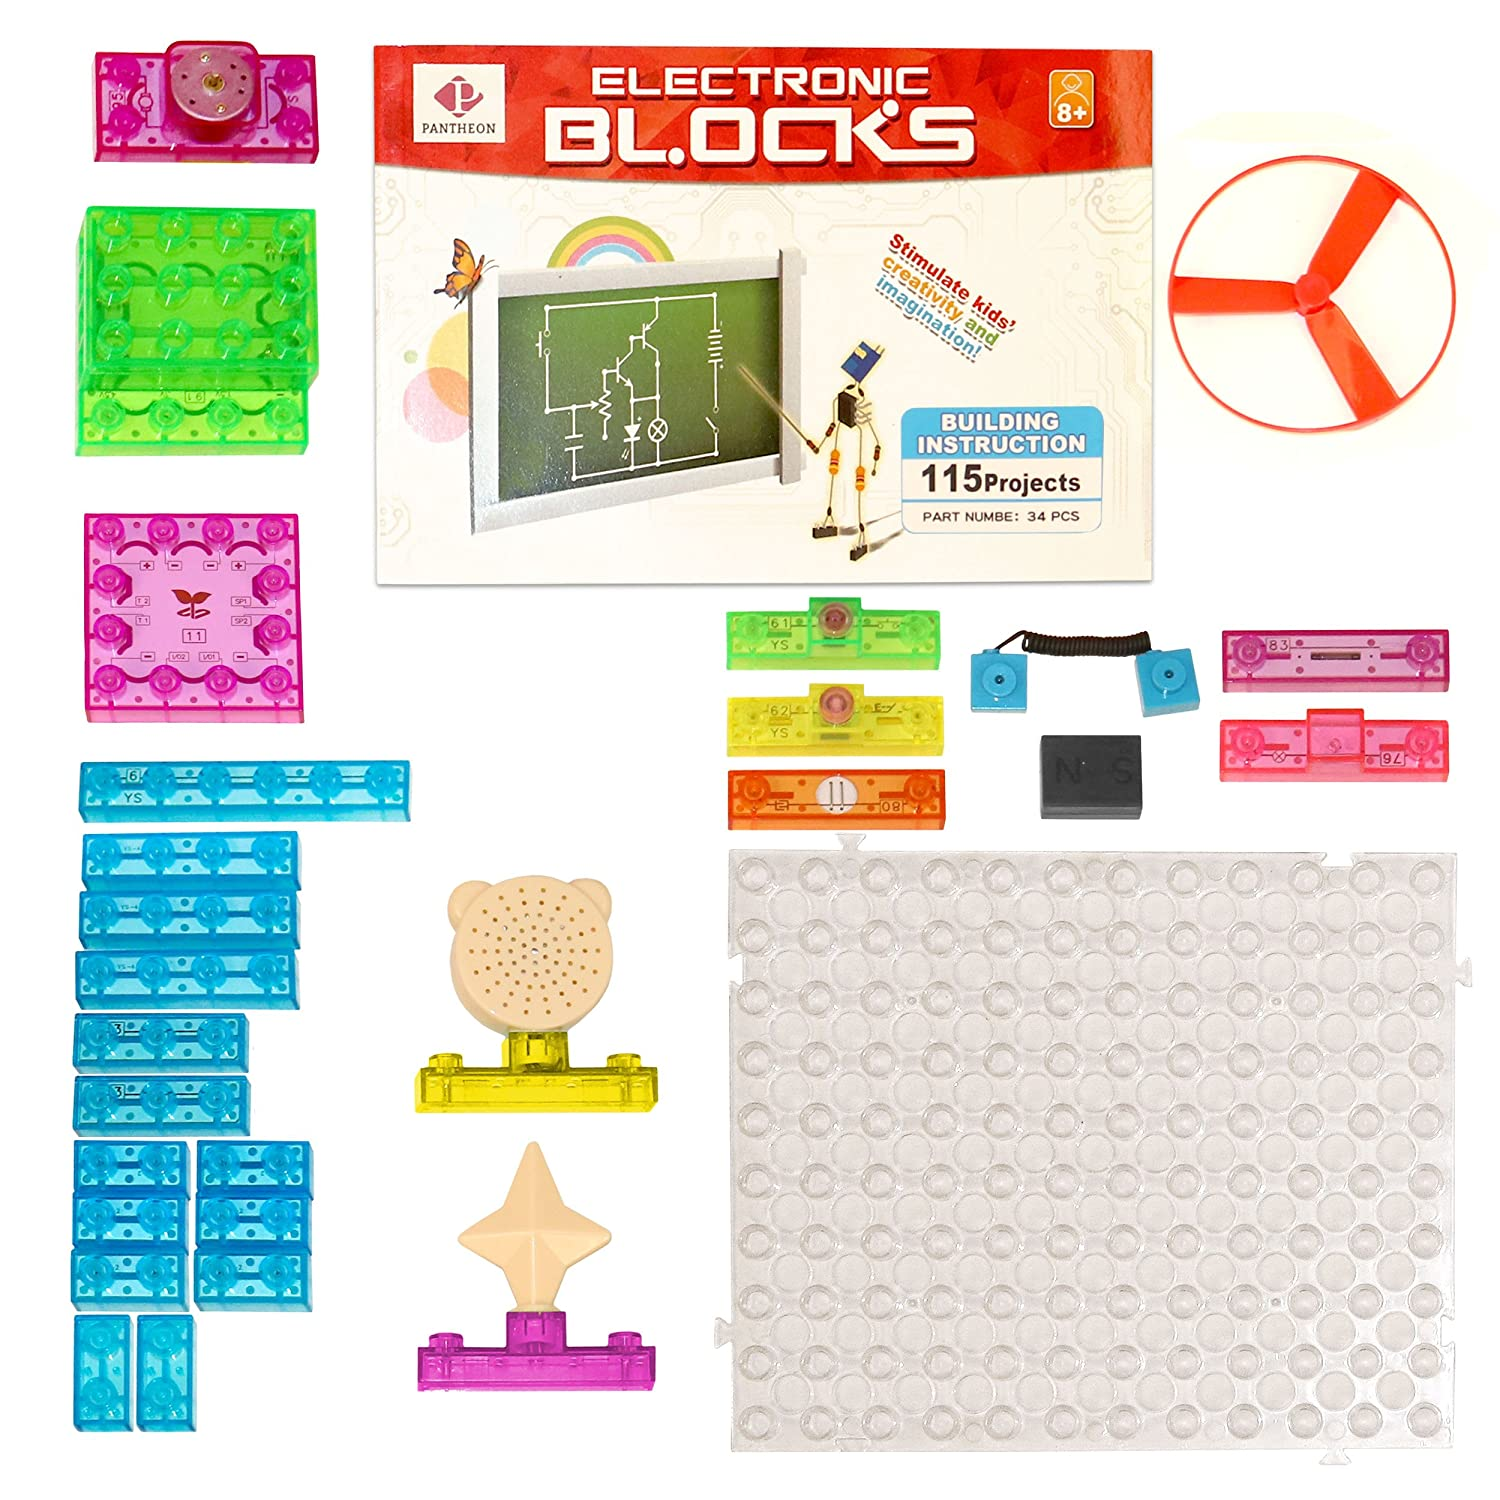 Pantheon Circuit Kit With Lighted Bricks 44pcs 120 Snap Circuits Snaptricity Build 75 Projects Different In 1 Educational Toy Toys Games